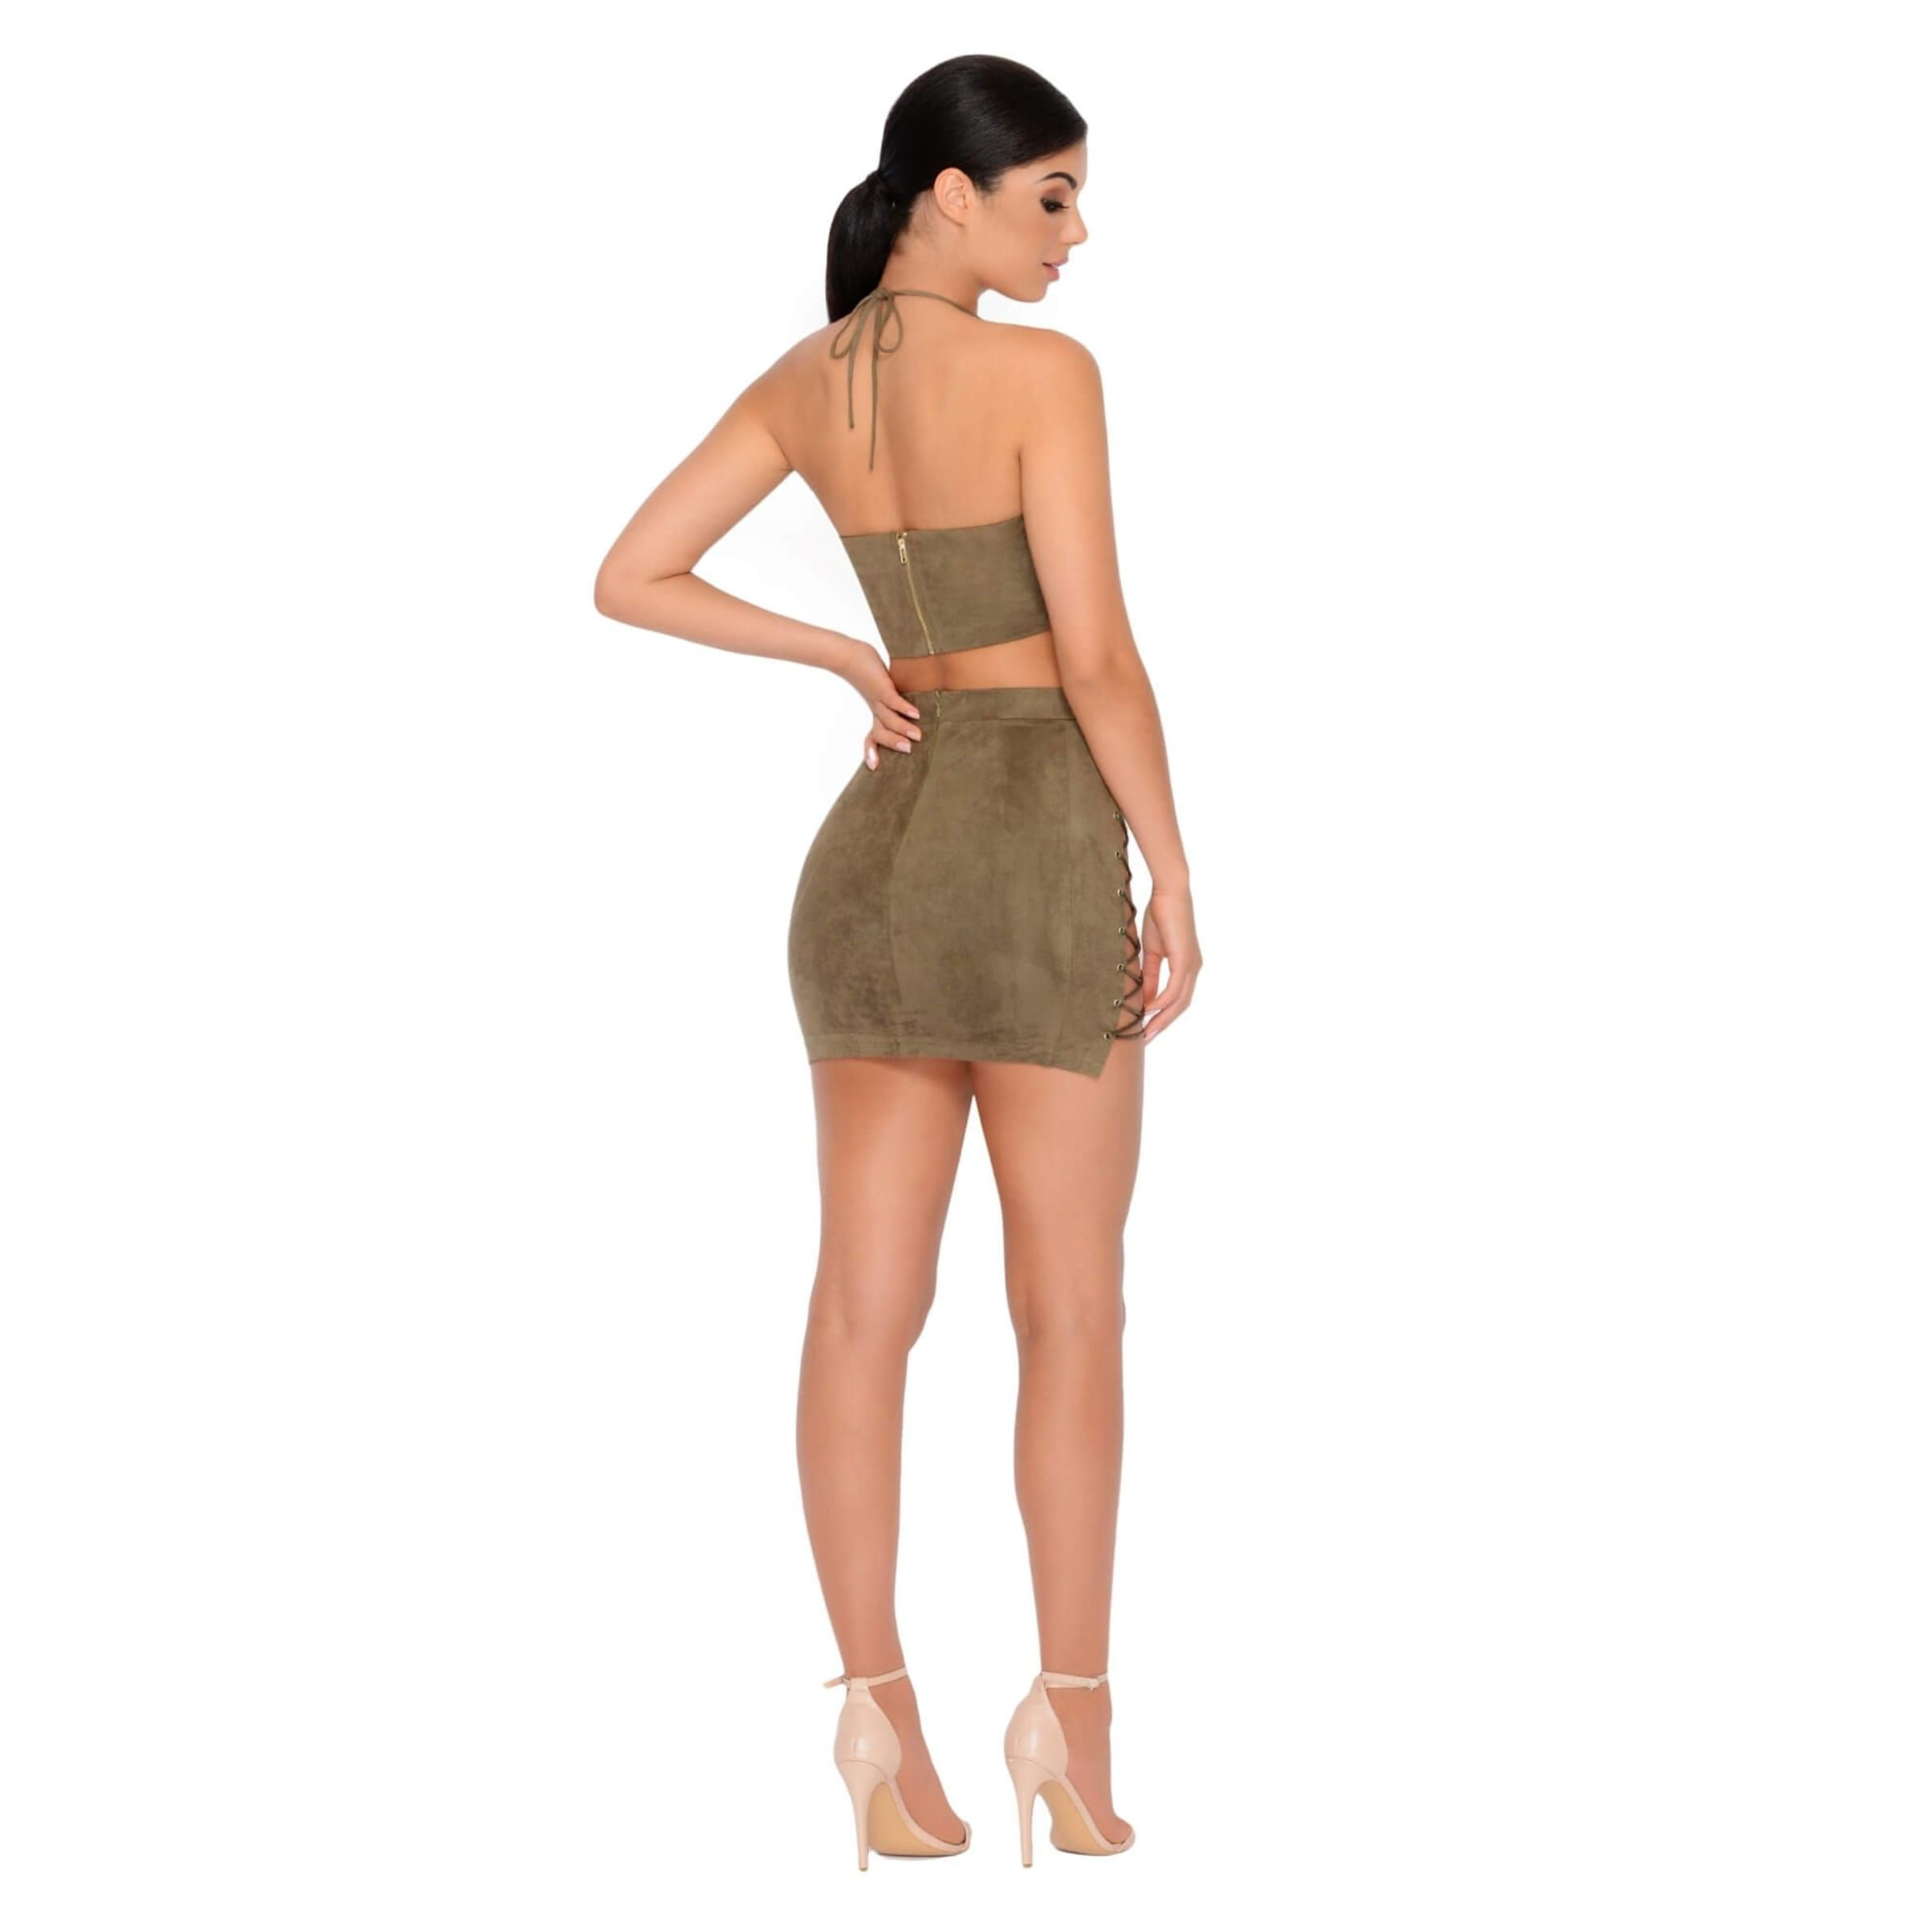 ce10bd7ffab6 Straight Laced Suede Tie Up Two Piece in Khaki | Straight Crop Top ...